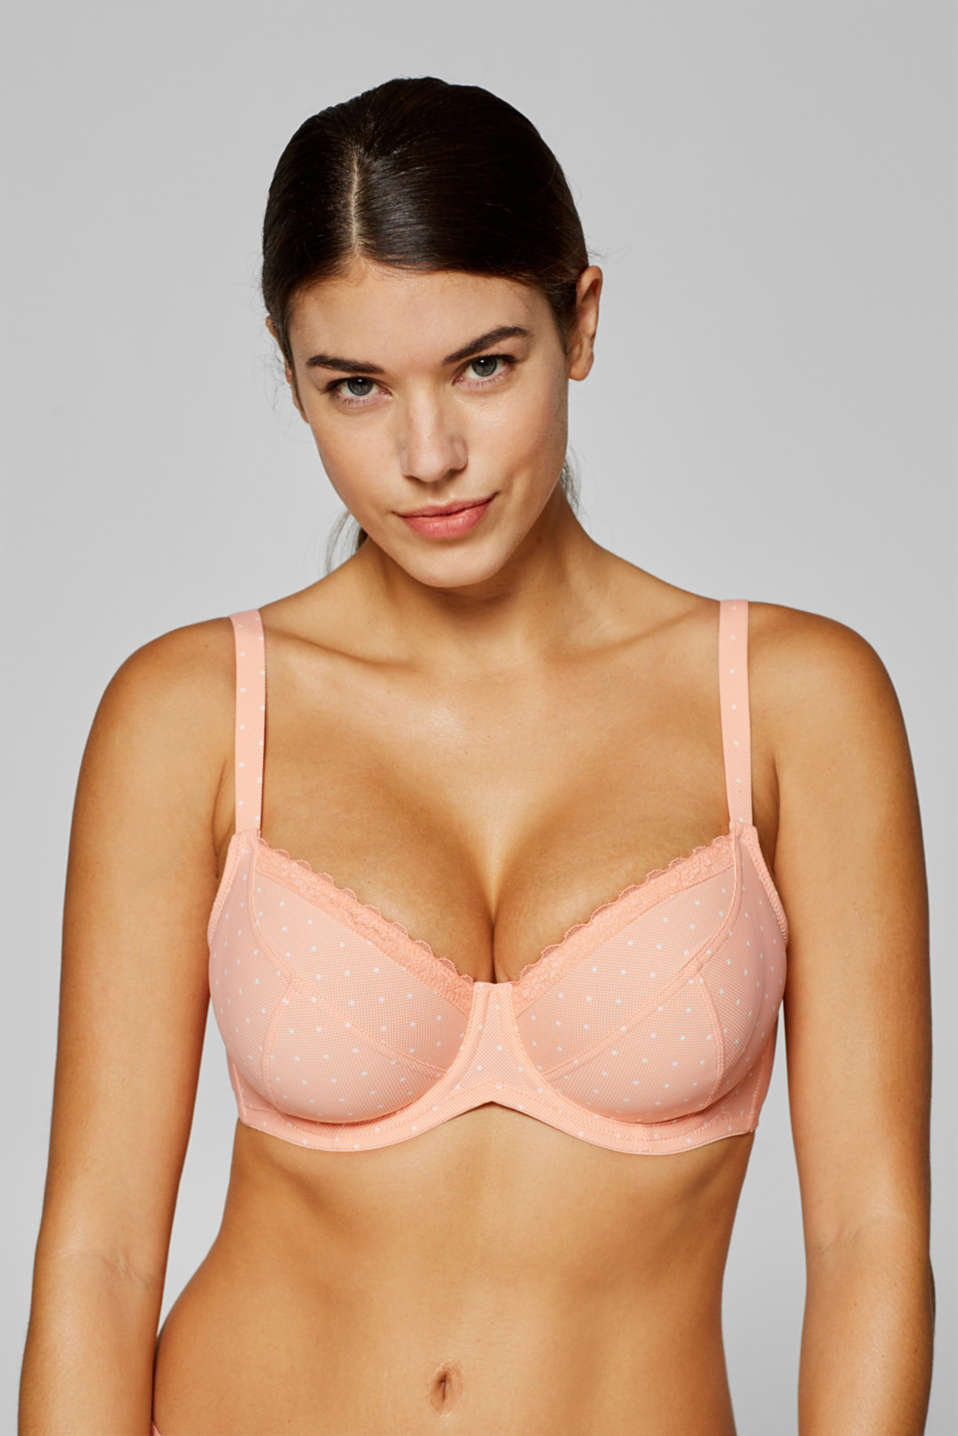 Esprit - Unpadded underwire bra with a print, made especially for larger cup sizes